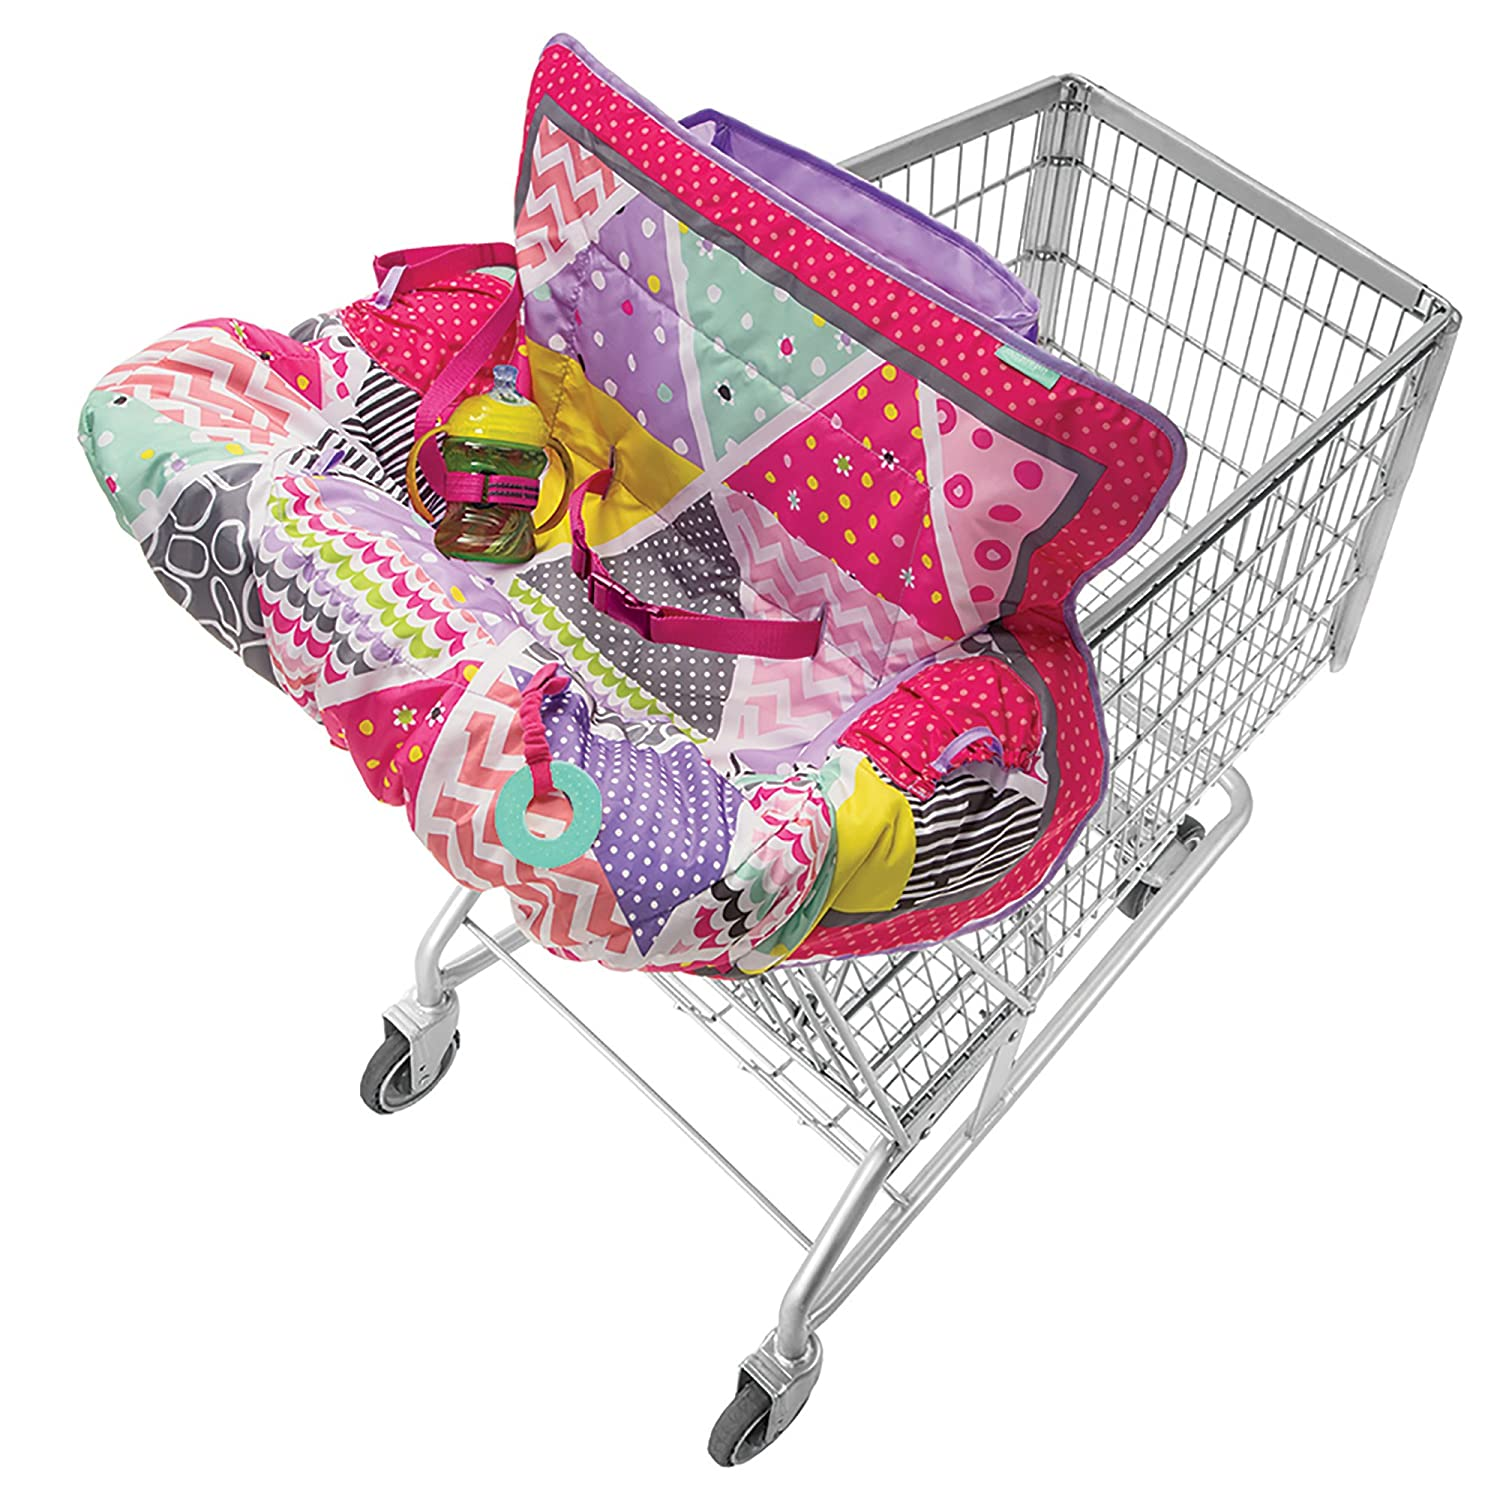 Infantino Compact Cart Cover, Pink 206-161